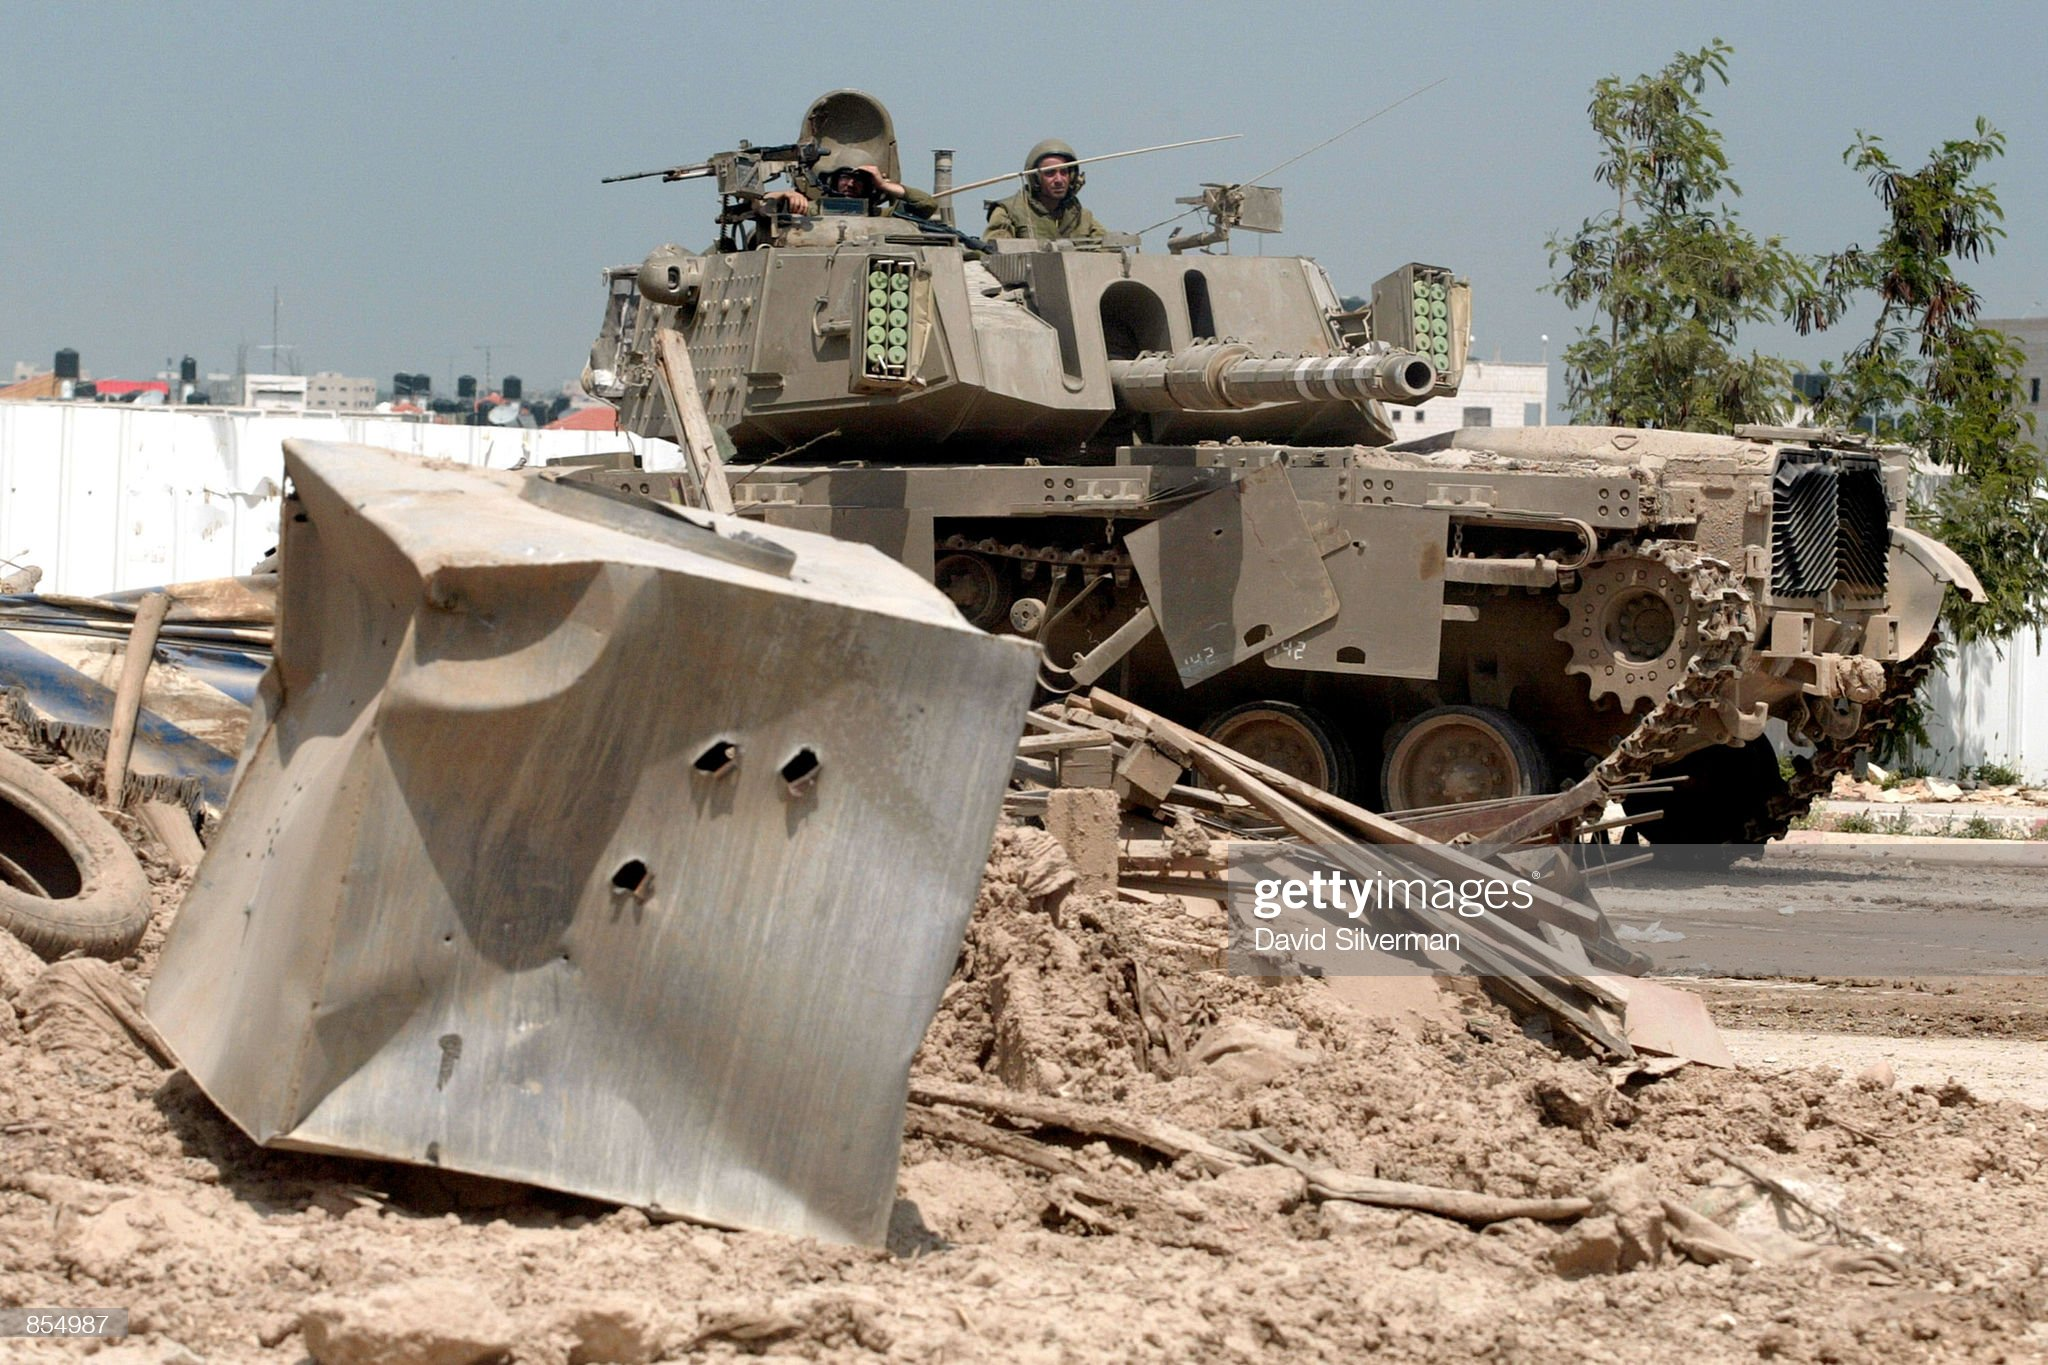 https://media.gettyimages.com/photos/an-israeli-tank-sticks-out-from-behind-a-mound-of-rubble-in-the-west-picture-id854987?s=2048x2048